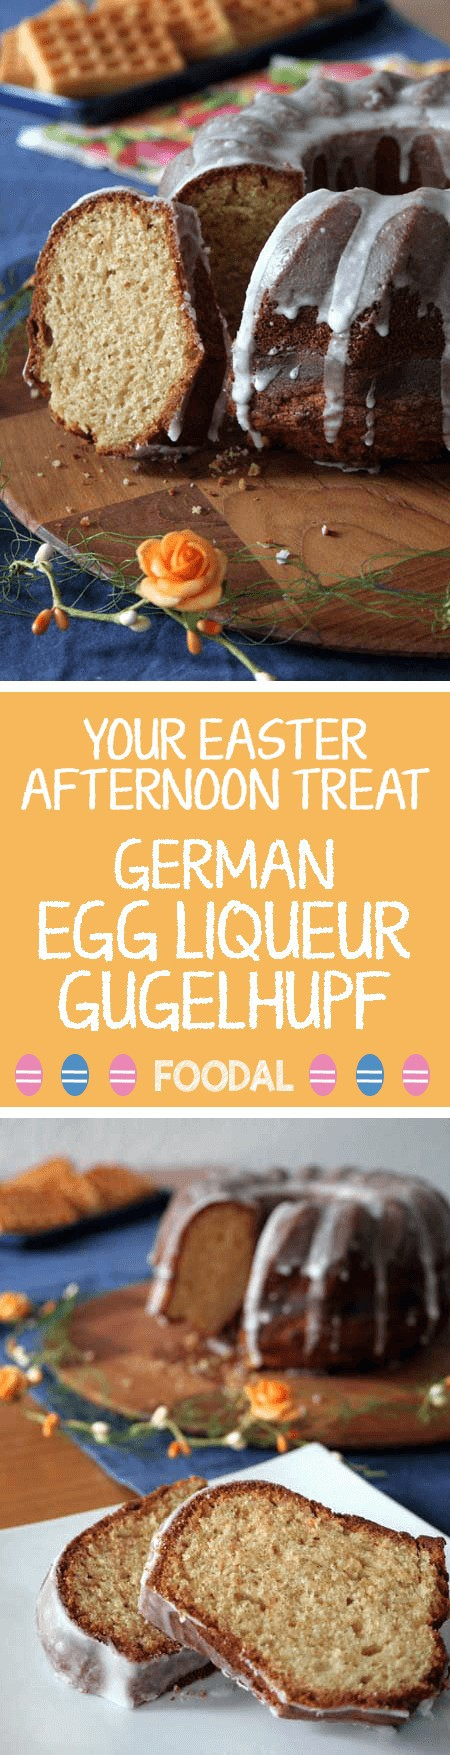 Have fun with Easter using this fast and simple to prepare German Gugelhupf cake. Regardless of whether you are invited to an Easter luncheon or hosting a special event at home , this particular pastry is the ideal answer whenever there is you need to whip up something in a jiffy. https://foodal.com/holidays/easter/your-easter-afternoon-treat-egg-liqueur-gugelhupf/